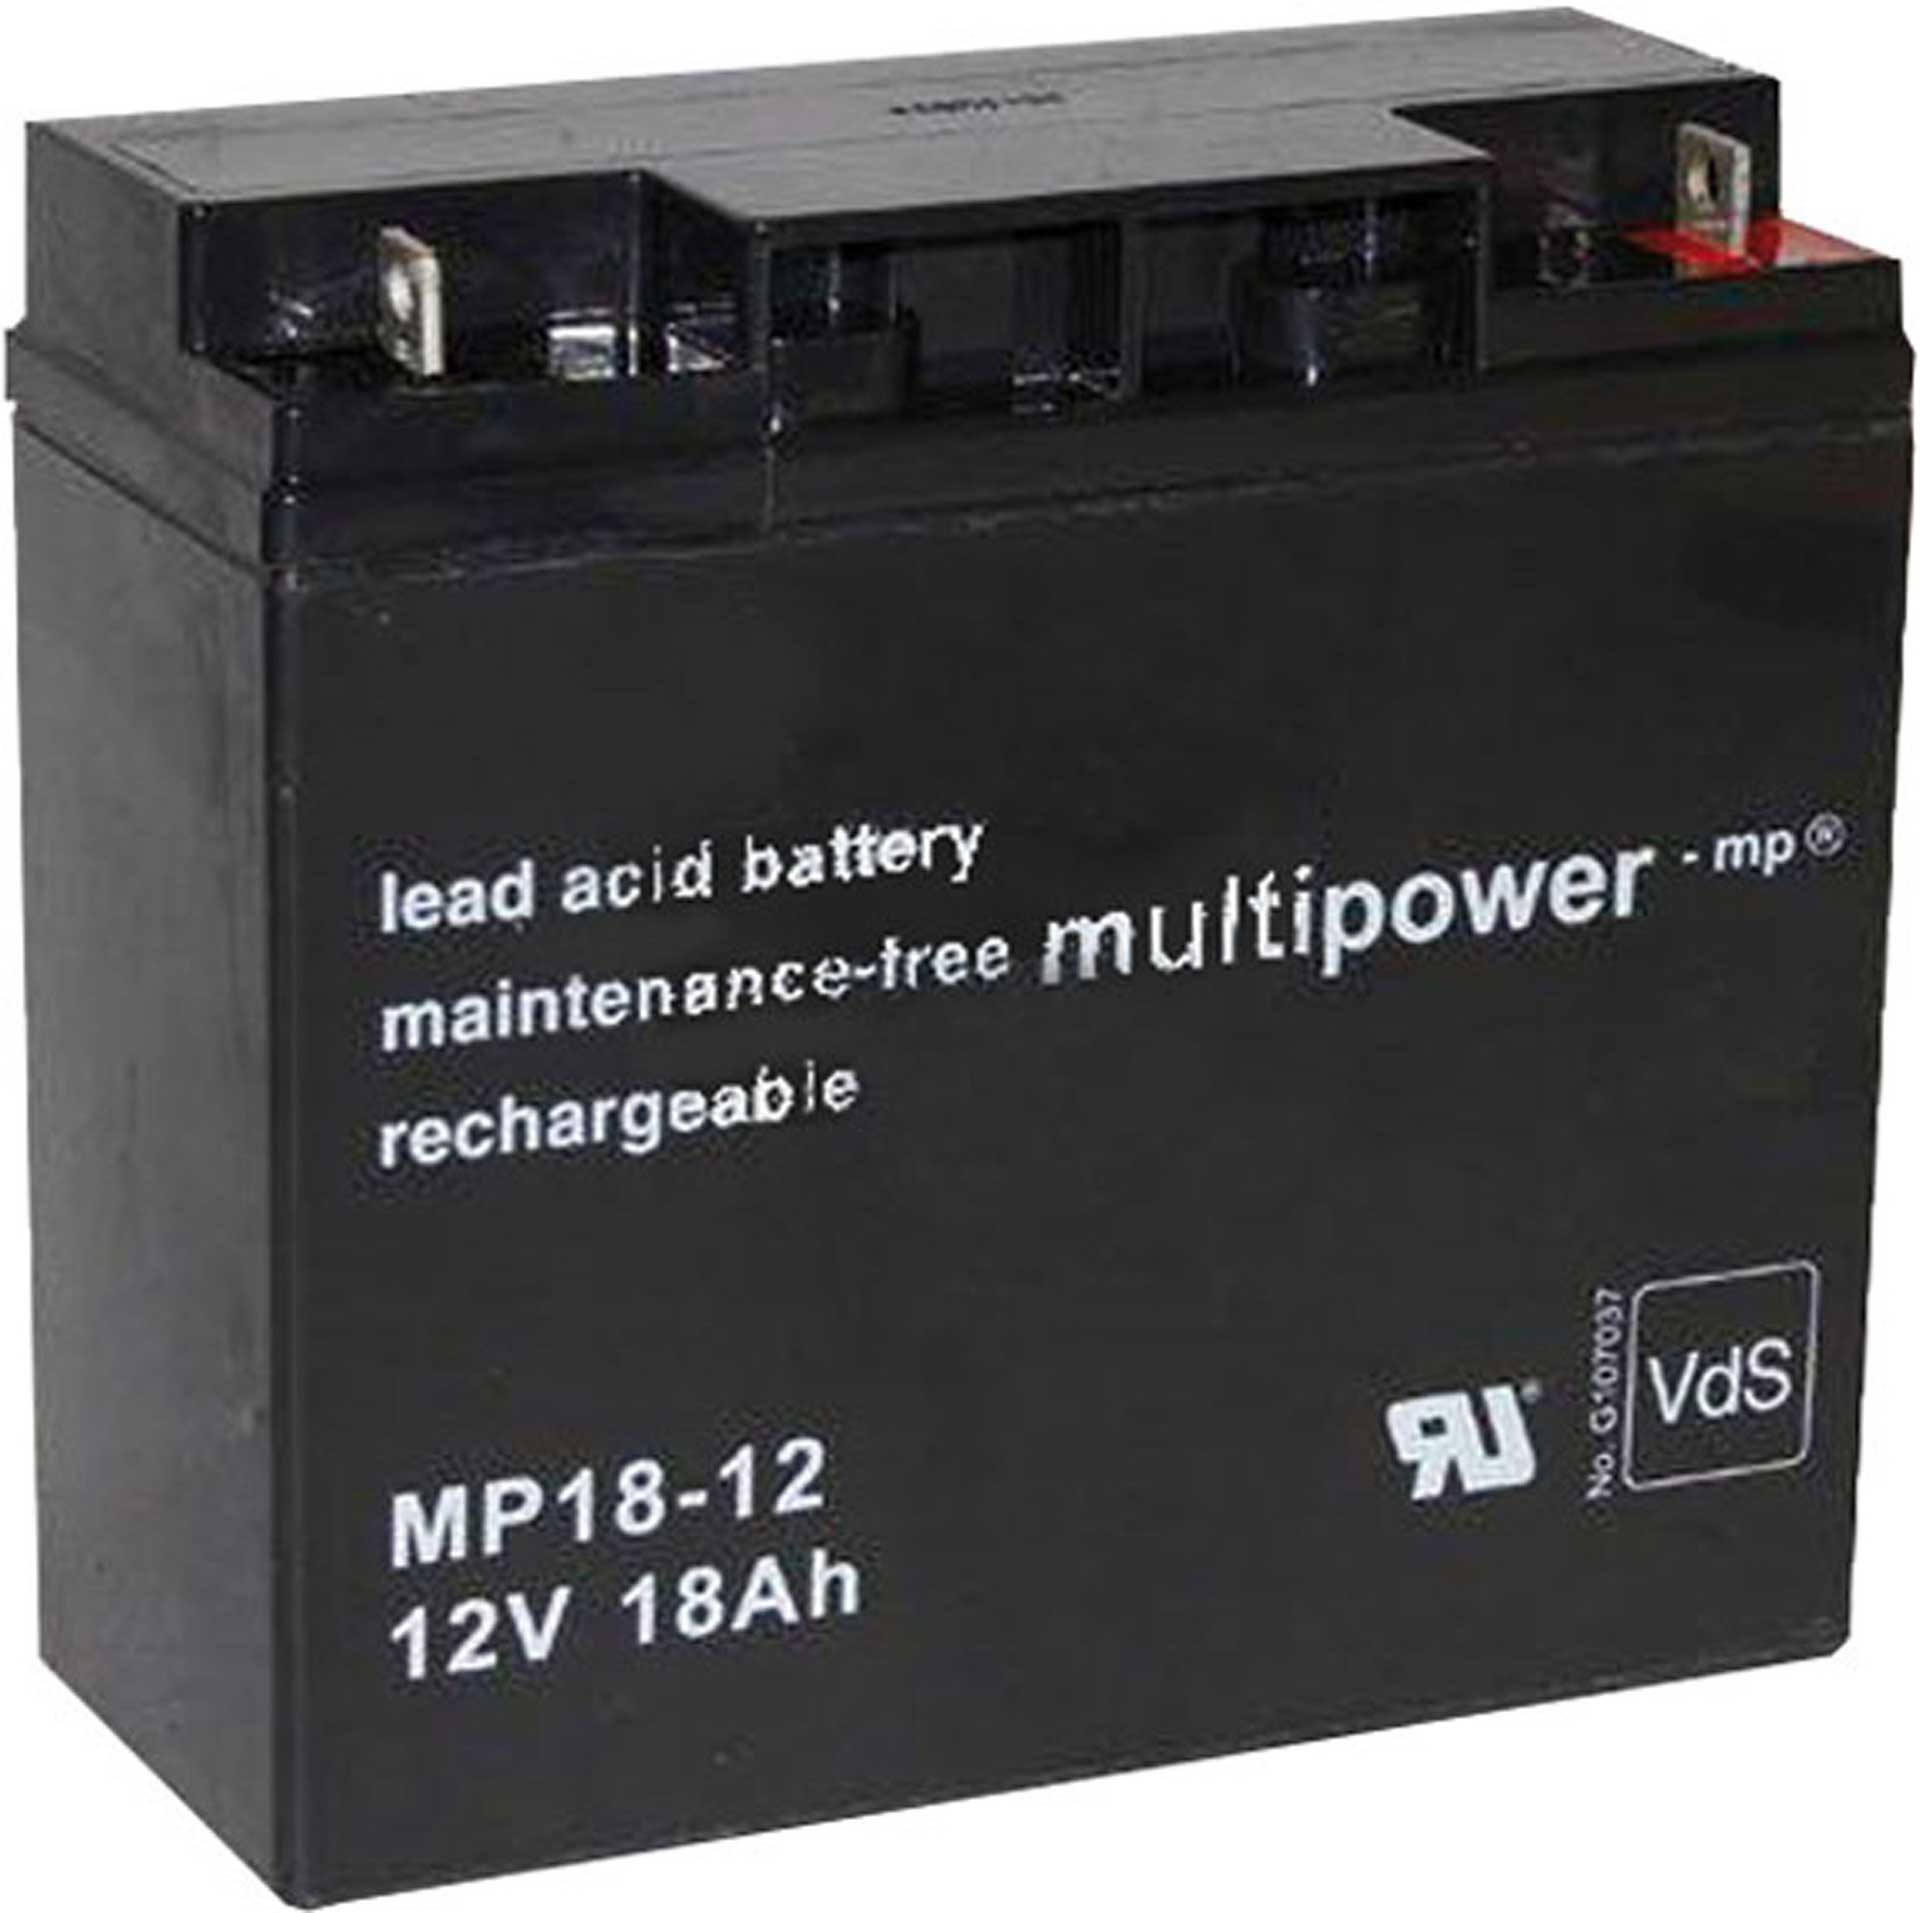 MULTIPOWER LEAD ACID BATTERY 12V/18AH PB